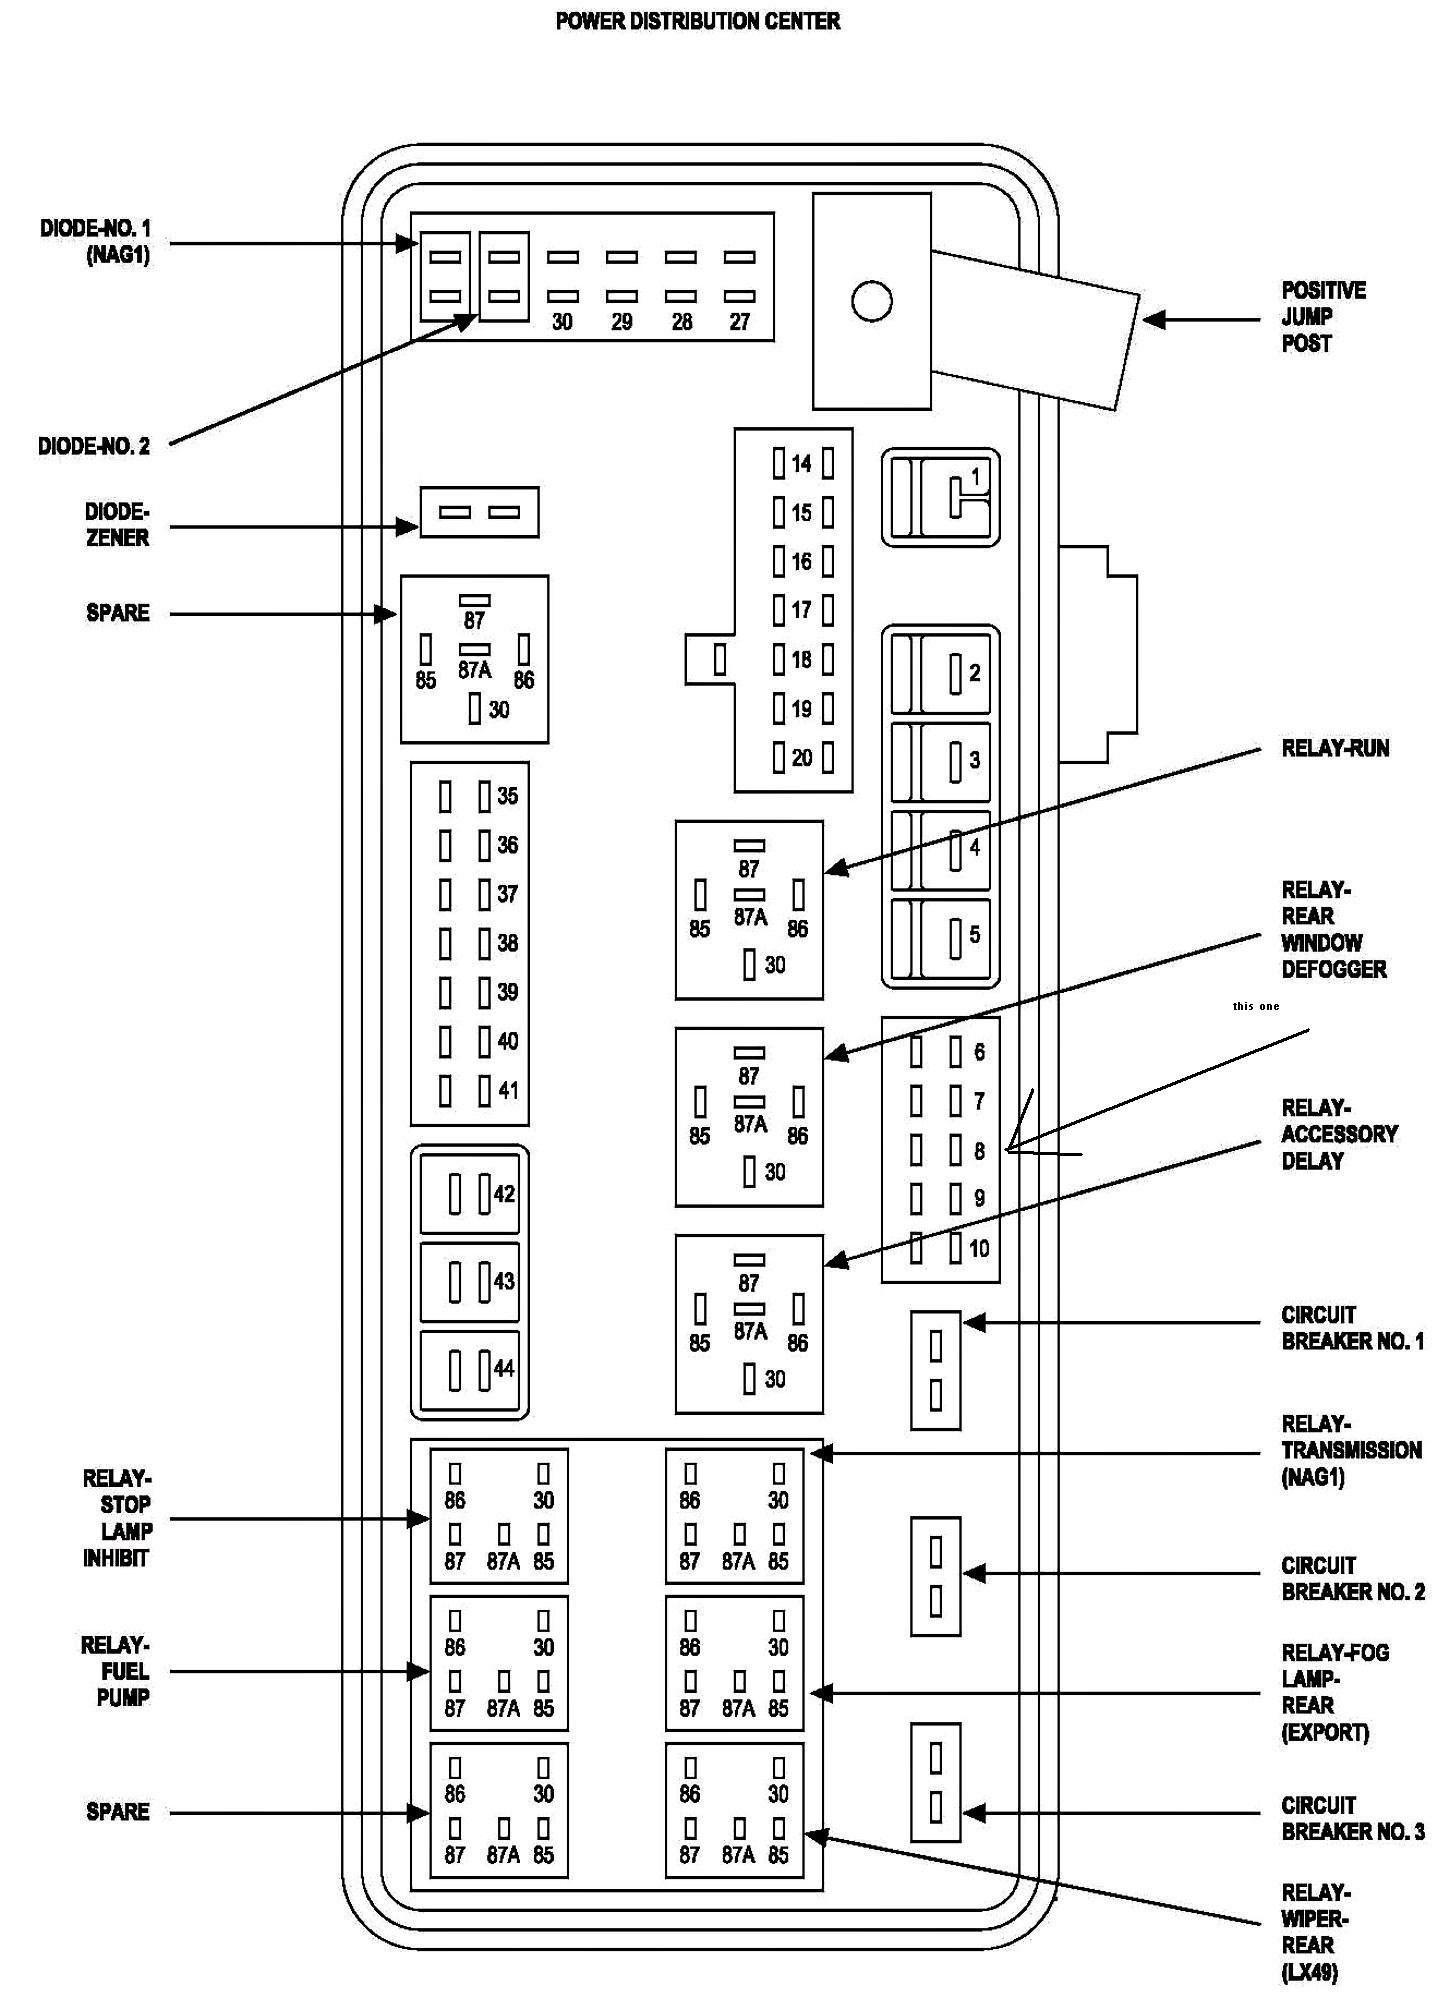 1985 Dodge Ram Fuse Box Diagram - Wiring Diagrams Hubs - Dodge Ram 1500 Wiring Diagram Free